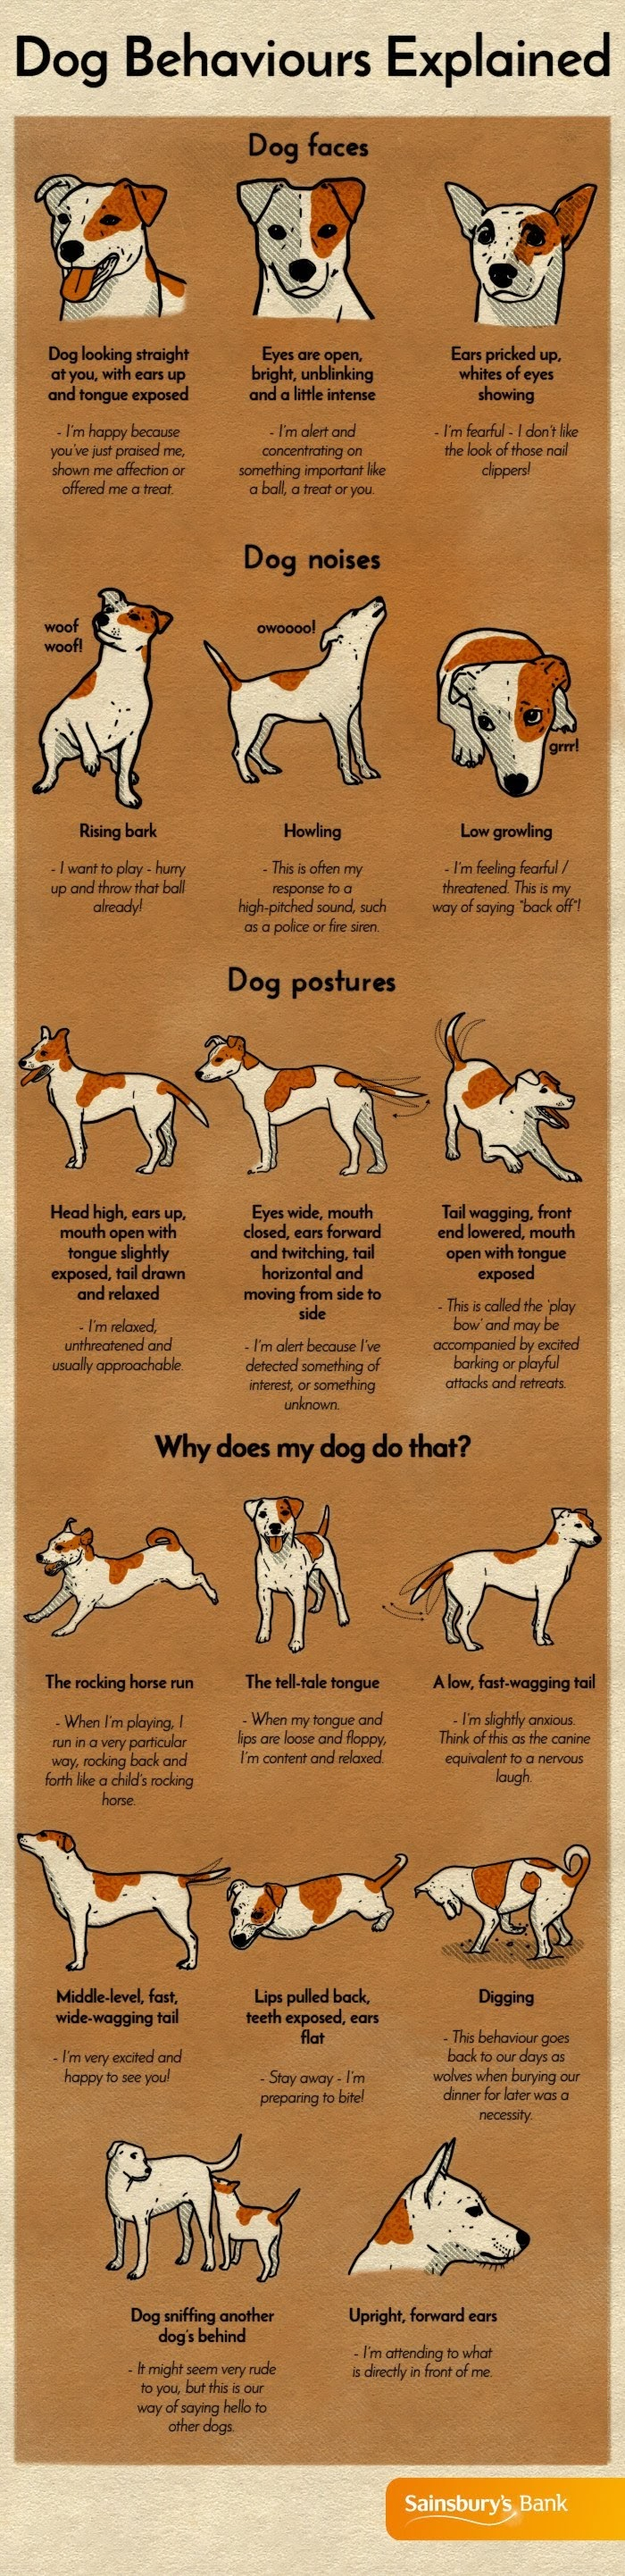 Dog behaviors Explained# infographic